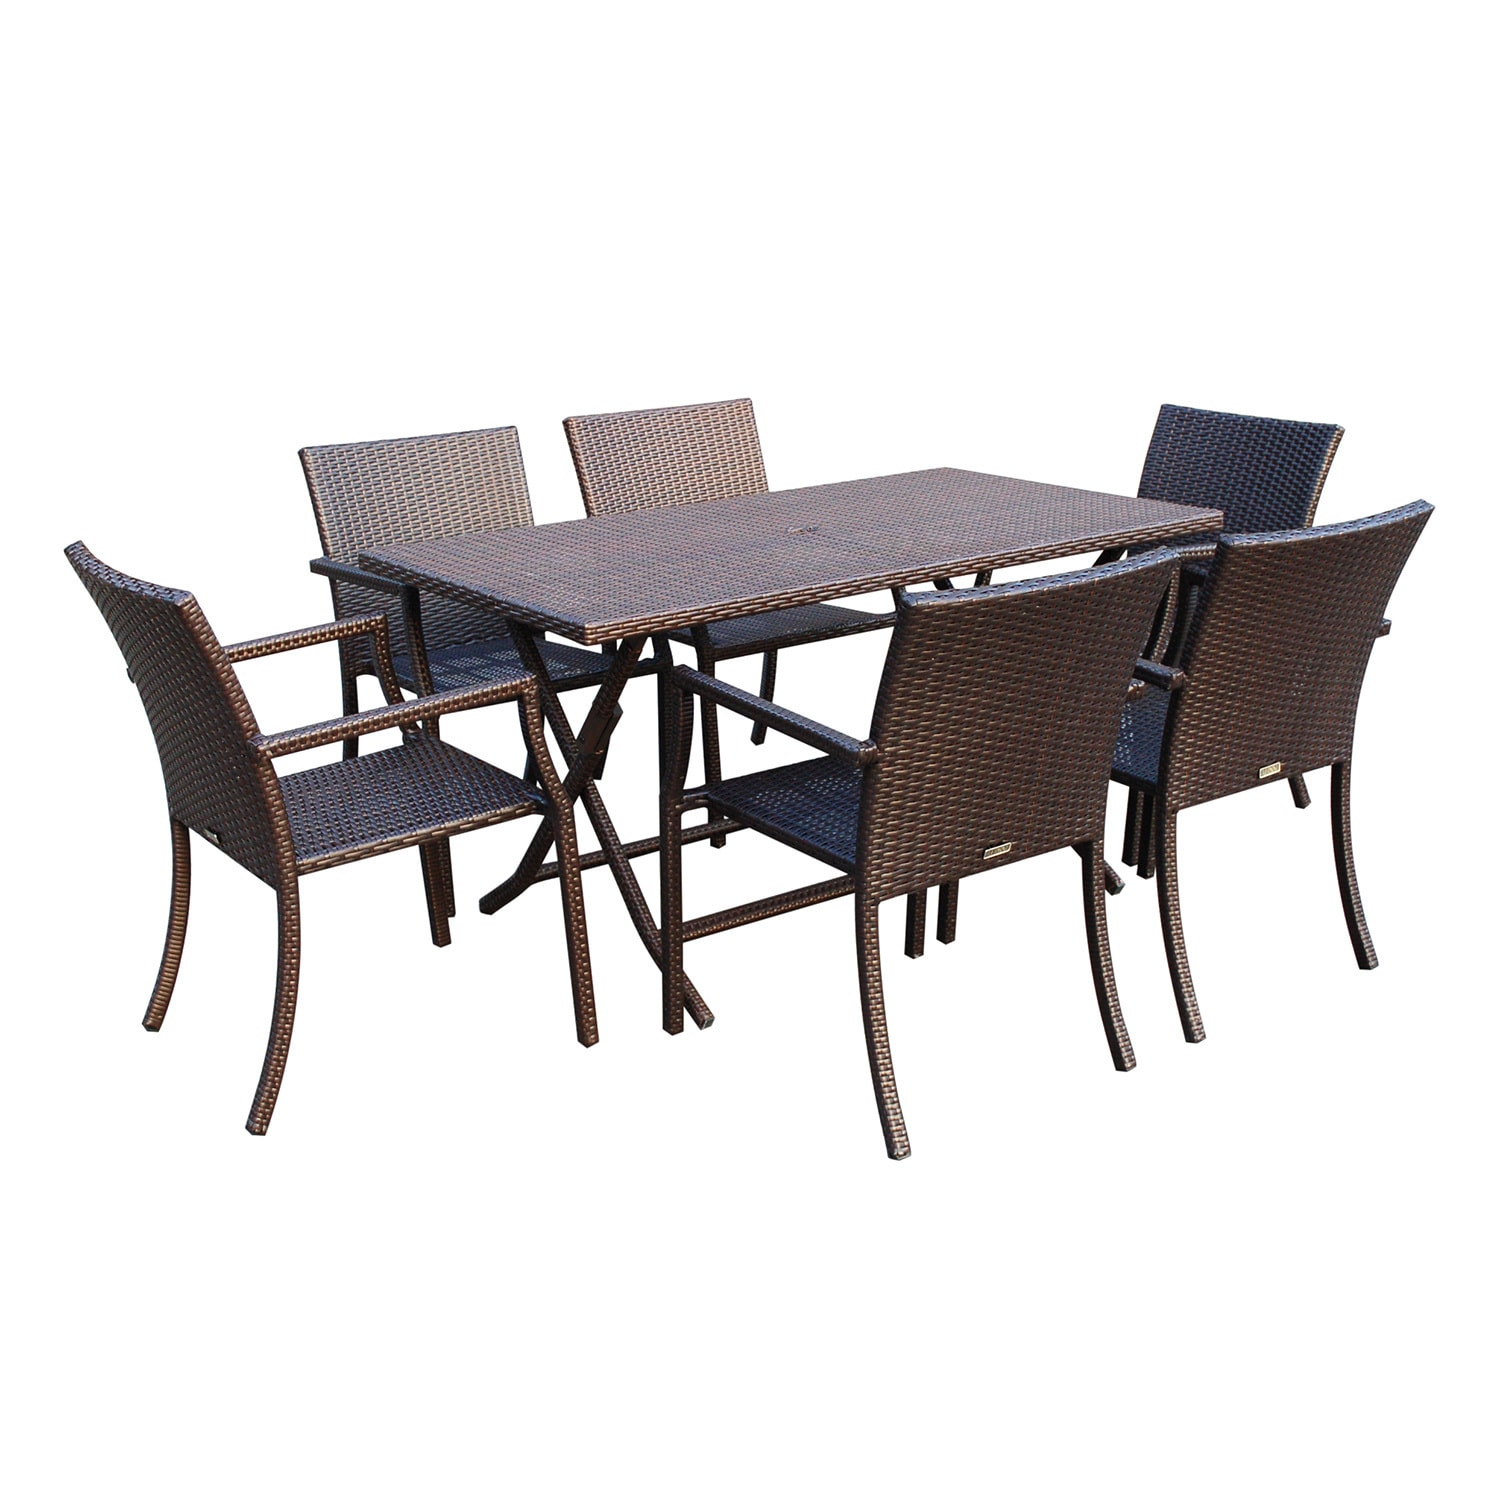 7 Piece Cafe Resin Wicker Dining Set Free Shipping Today 11375803